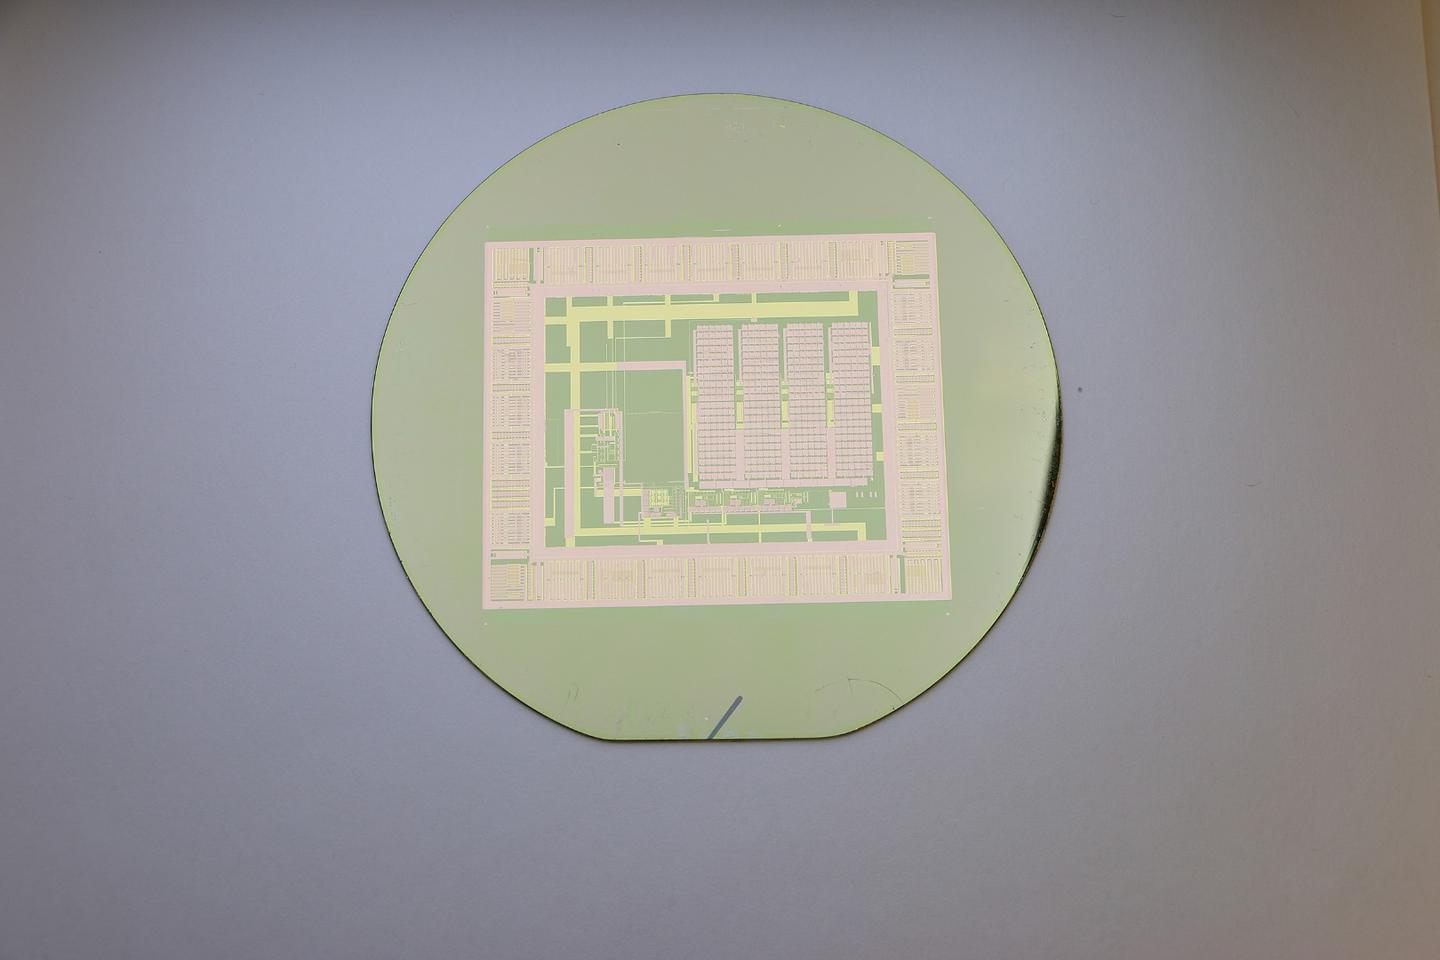 A thin-film electronic circuit can peel easily from its silicon wafer with water, making the wafer reusable for building a nearly infinite number of circuits